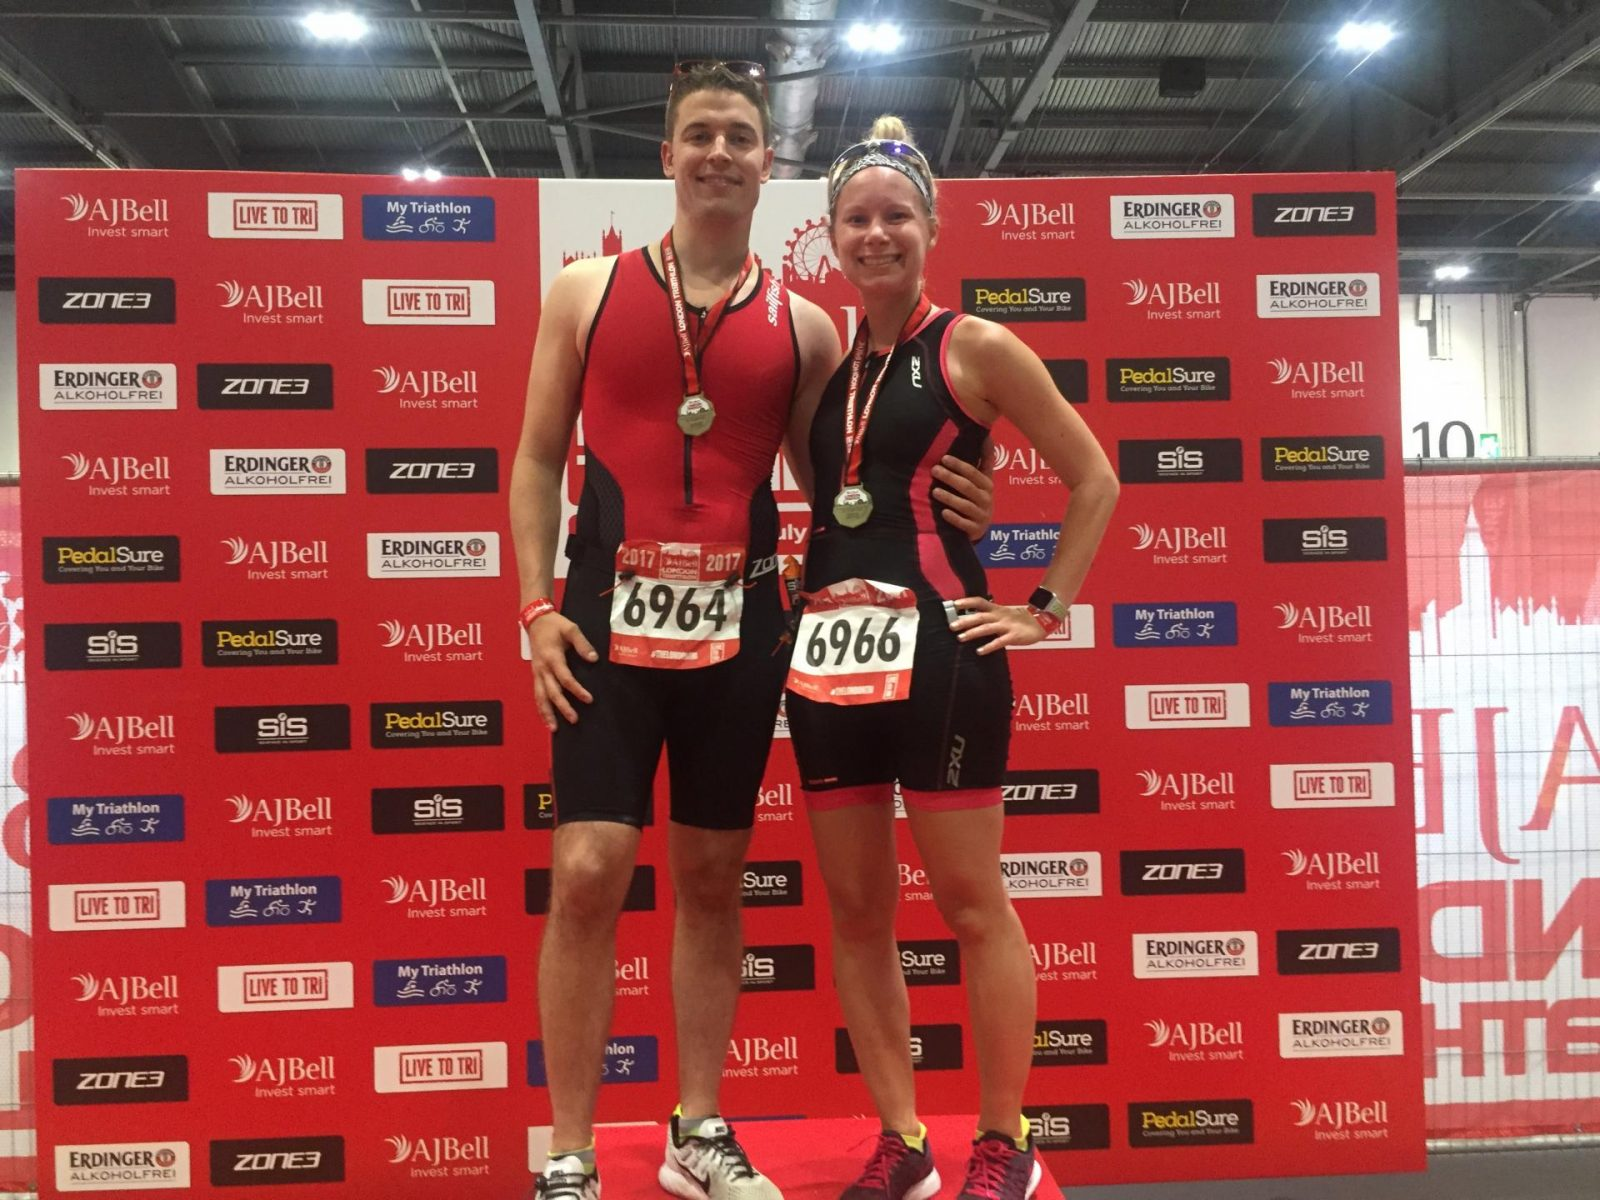 Race Review: My first Olympic Distance Triathlon | Thoughts